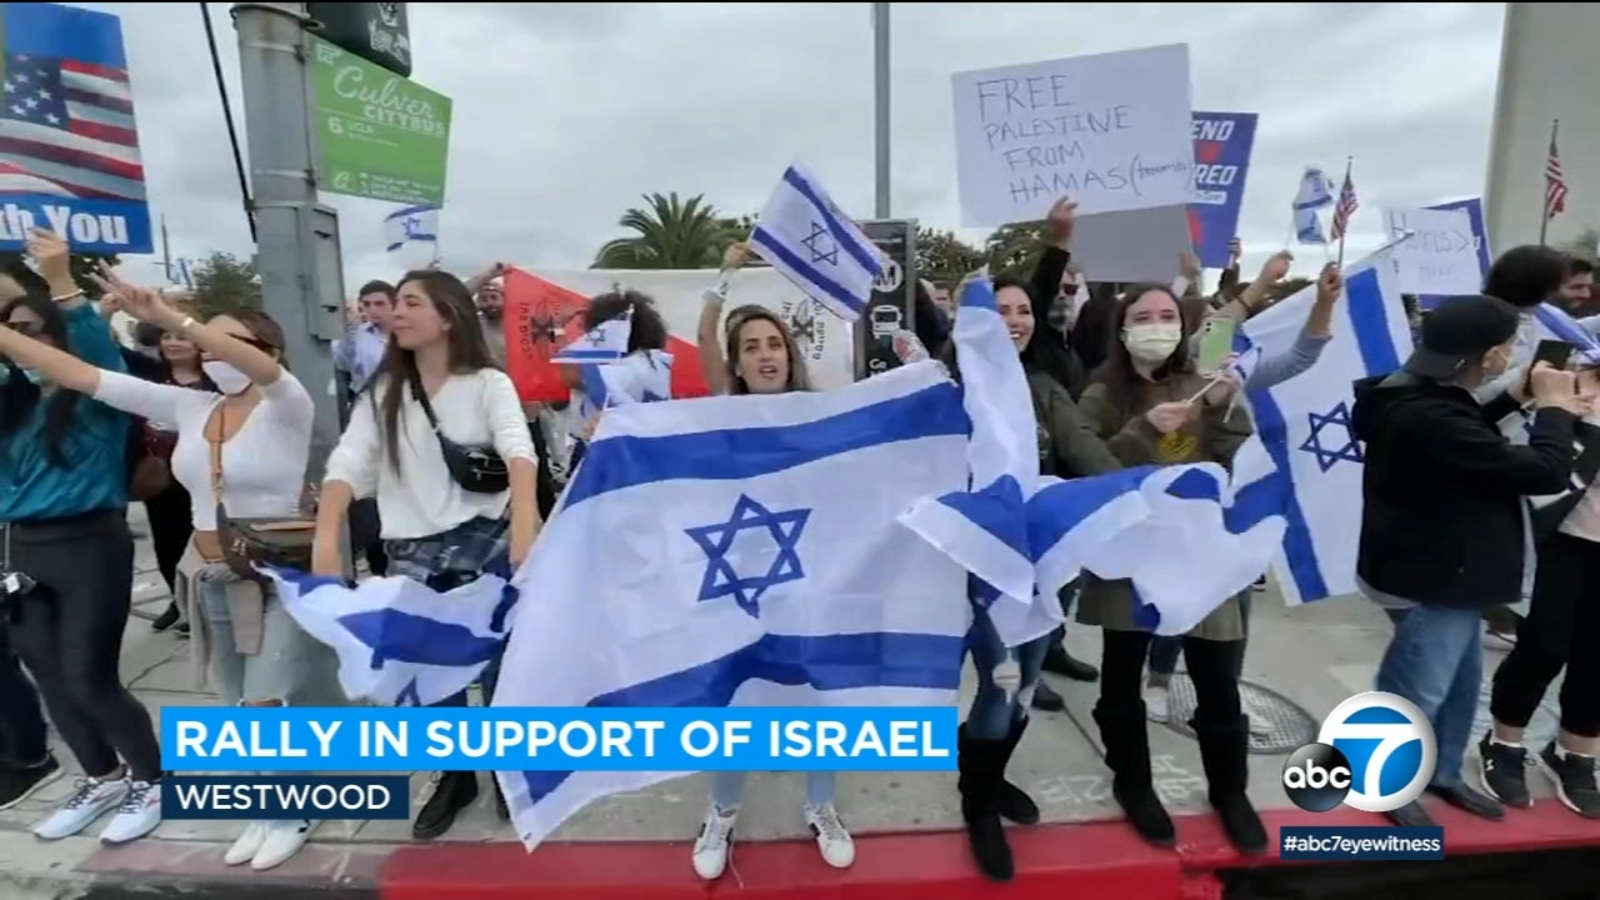 Demonstration held in Westwood to show support for Israel